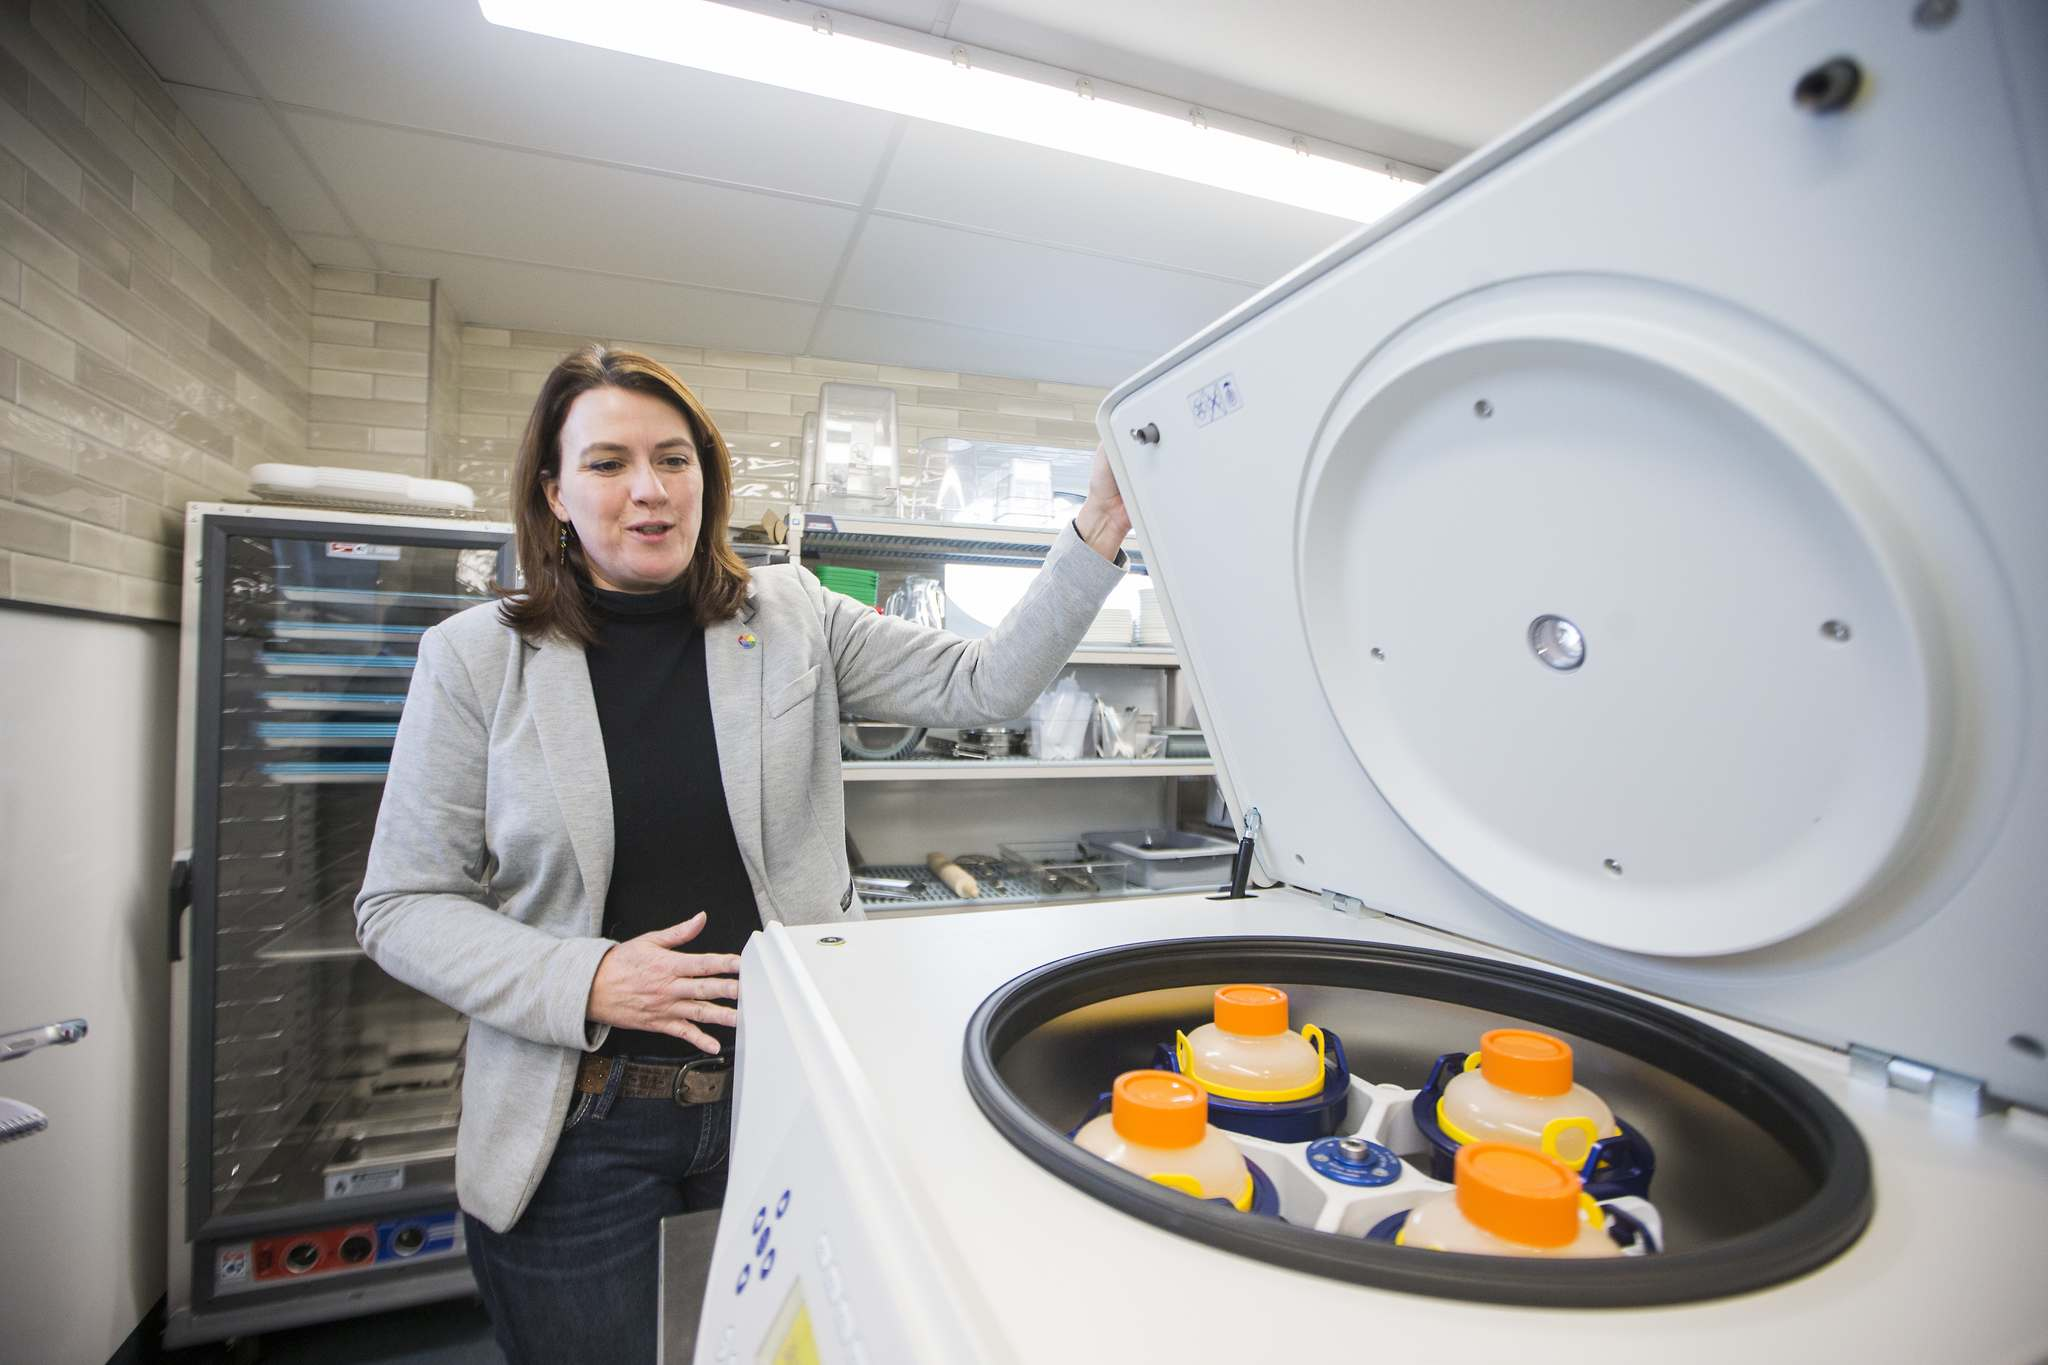 Mavis McRae, head of operations, opens up a centrifuge at the RRC's Culinary Research and Innovation Centre. McRae said they are exploring the licensing and regulatory requirements required to work with cannabis companies. (Mikaela MacKenzie / Winnipeg Free Press)